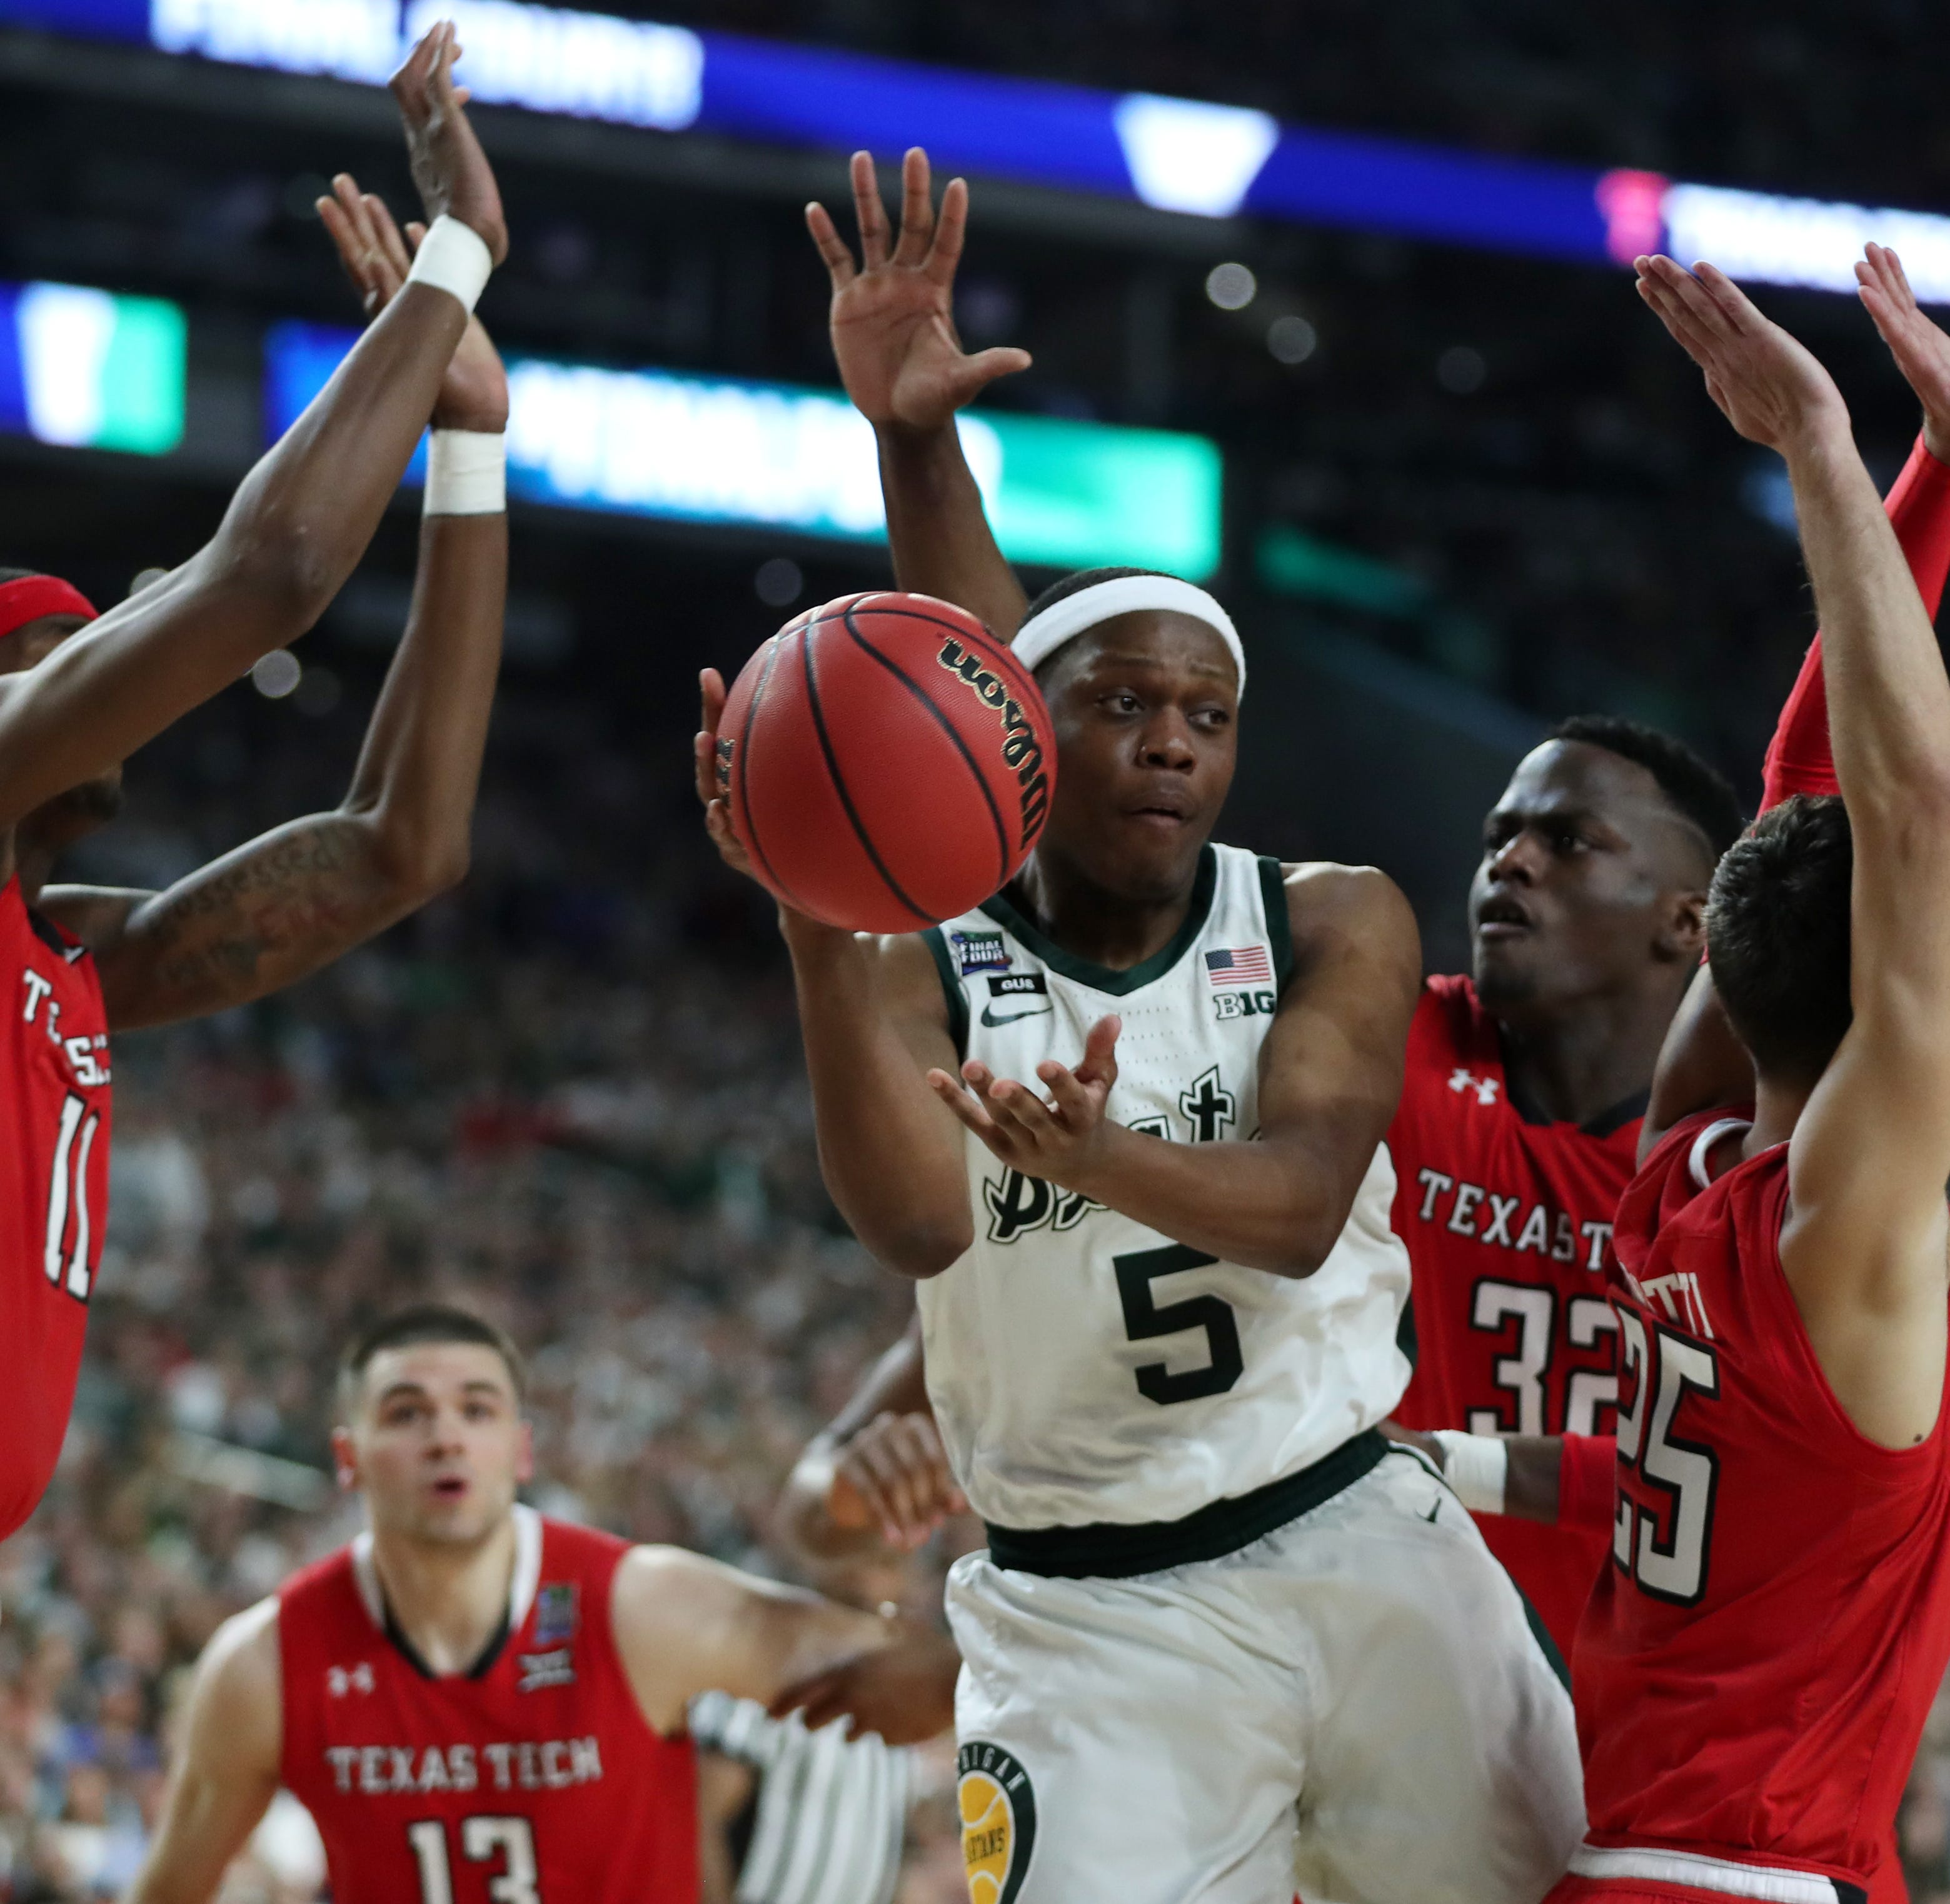 Michigan State basketball star Cassius Winston returning for senior season